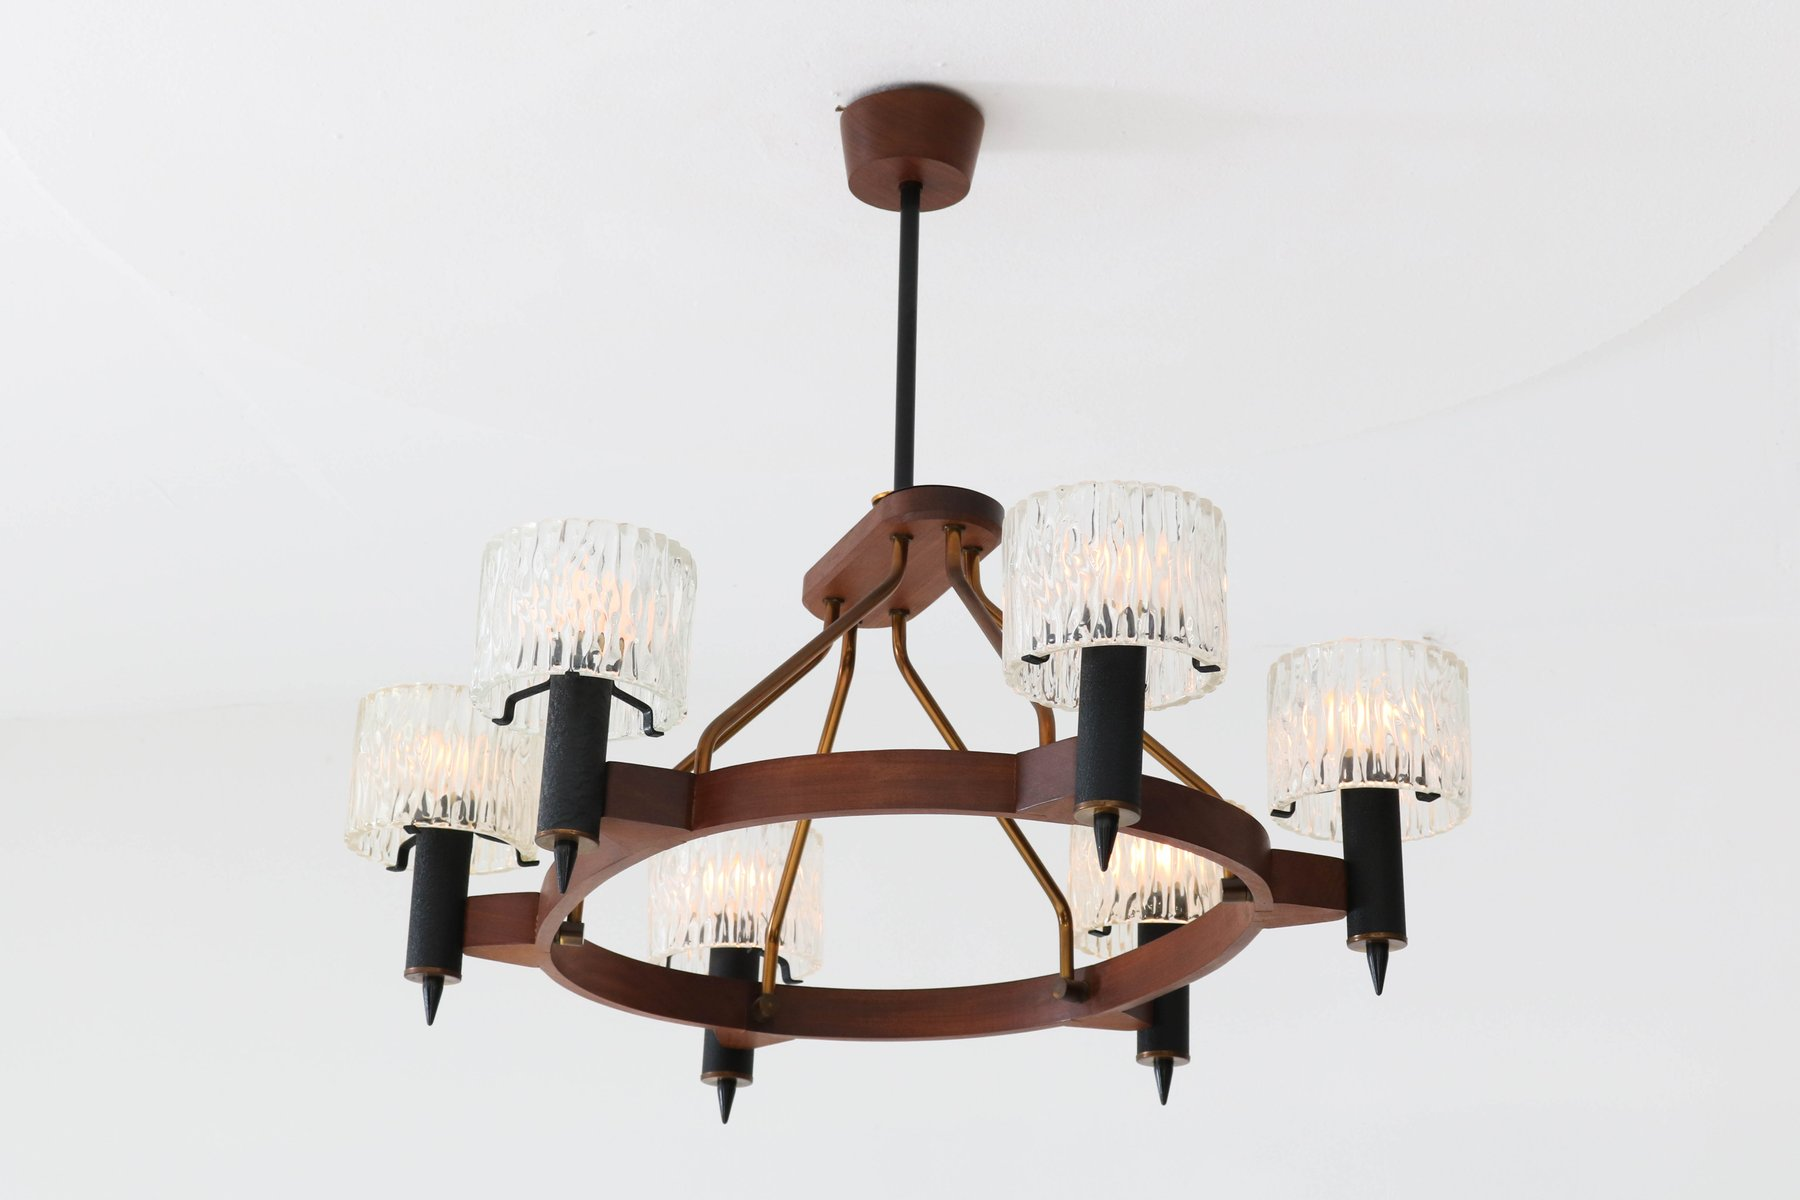 fans kristella light chandeliers collection rustic en lights depot chrome ceiling canada more modern chandelier categories oval the and p lighting home